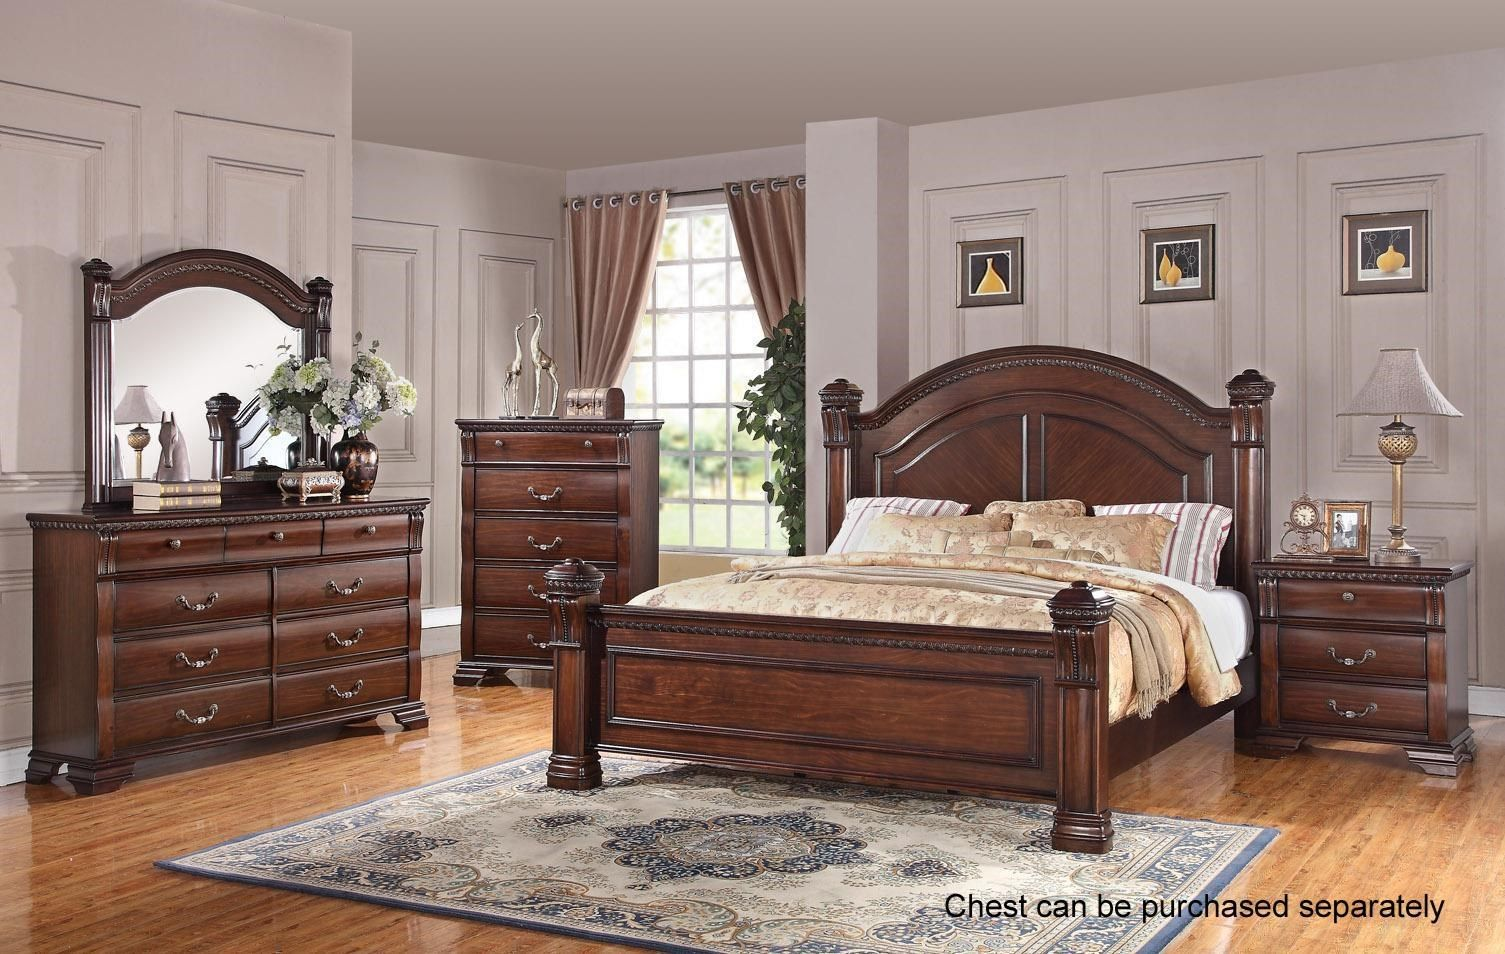 Isabella 527 Bedroom Group by Austin Group | Royal furniture ...